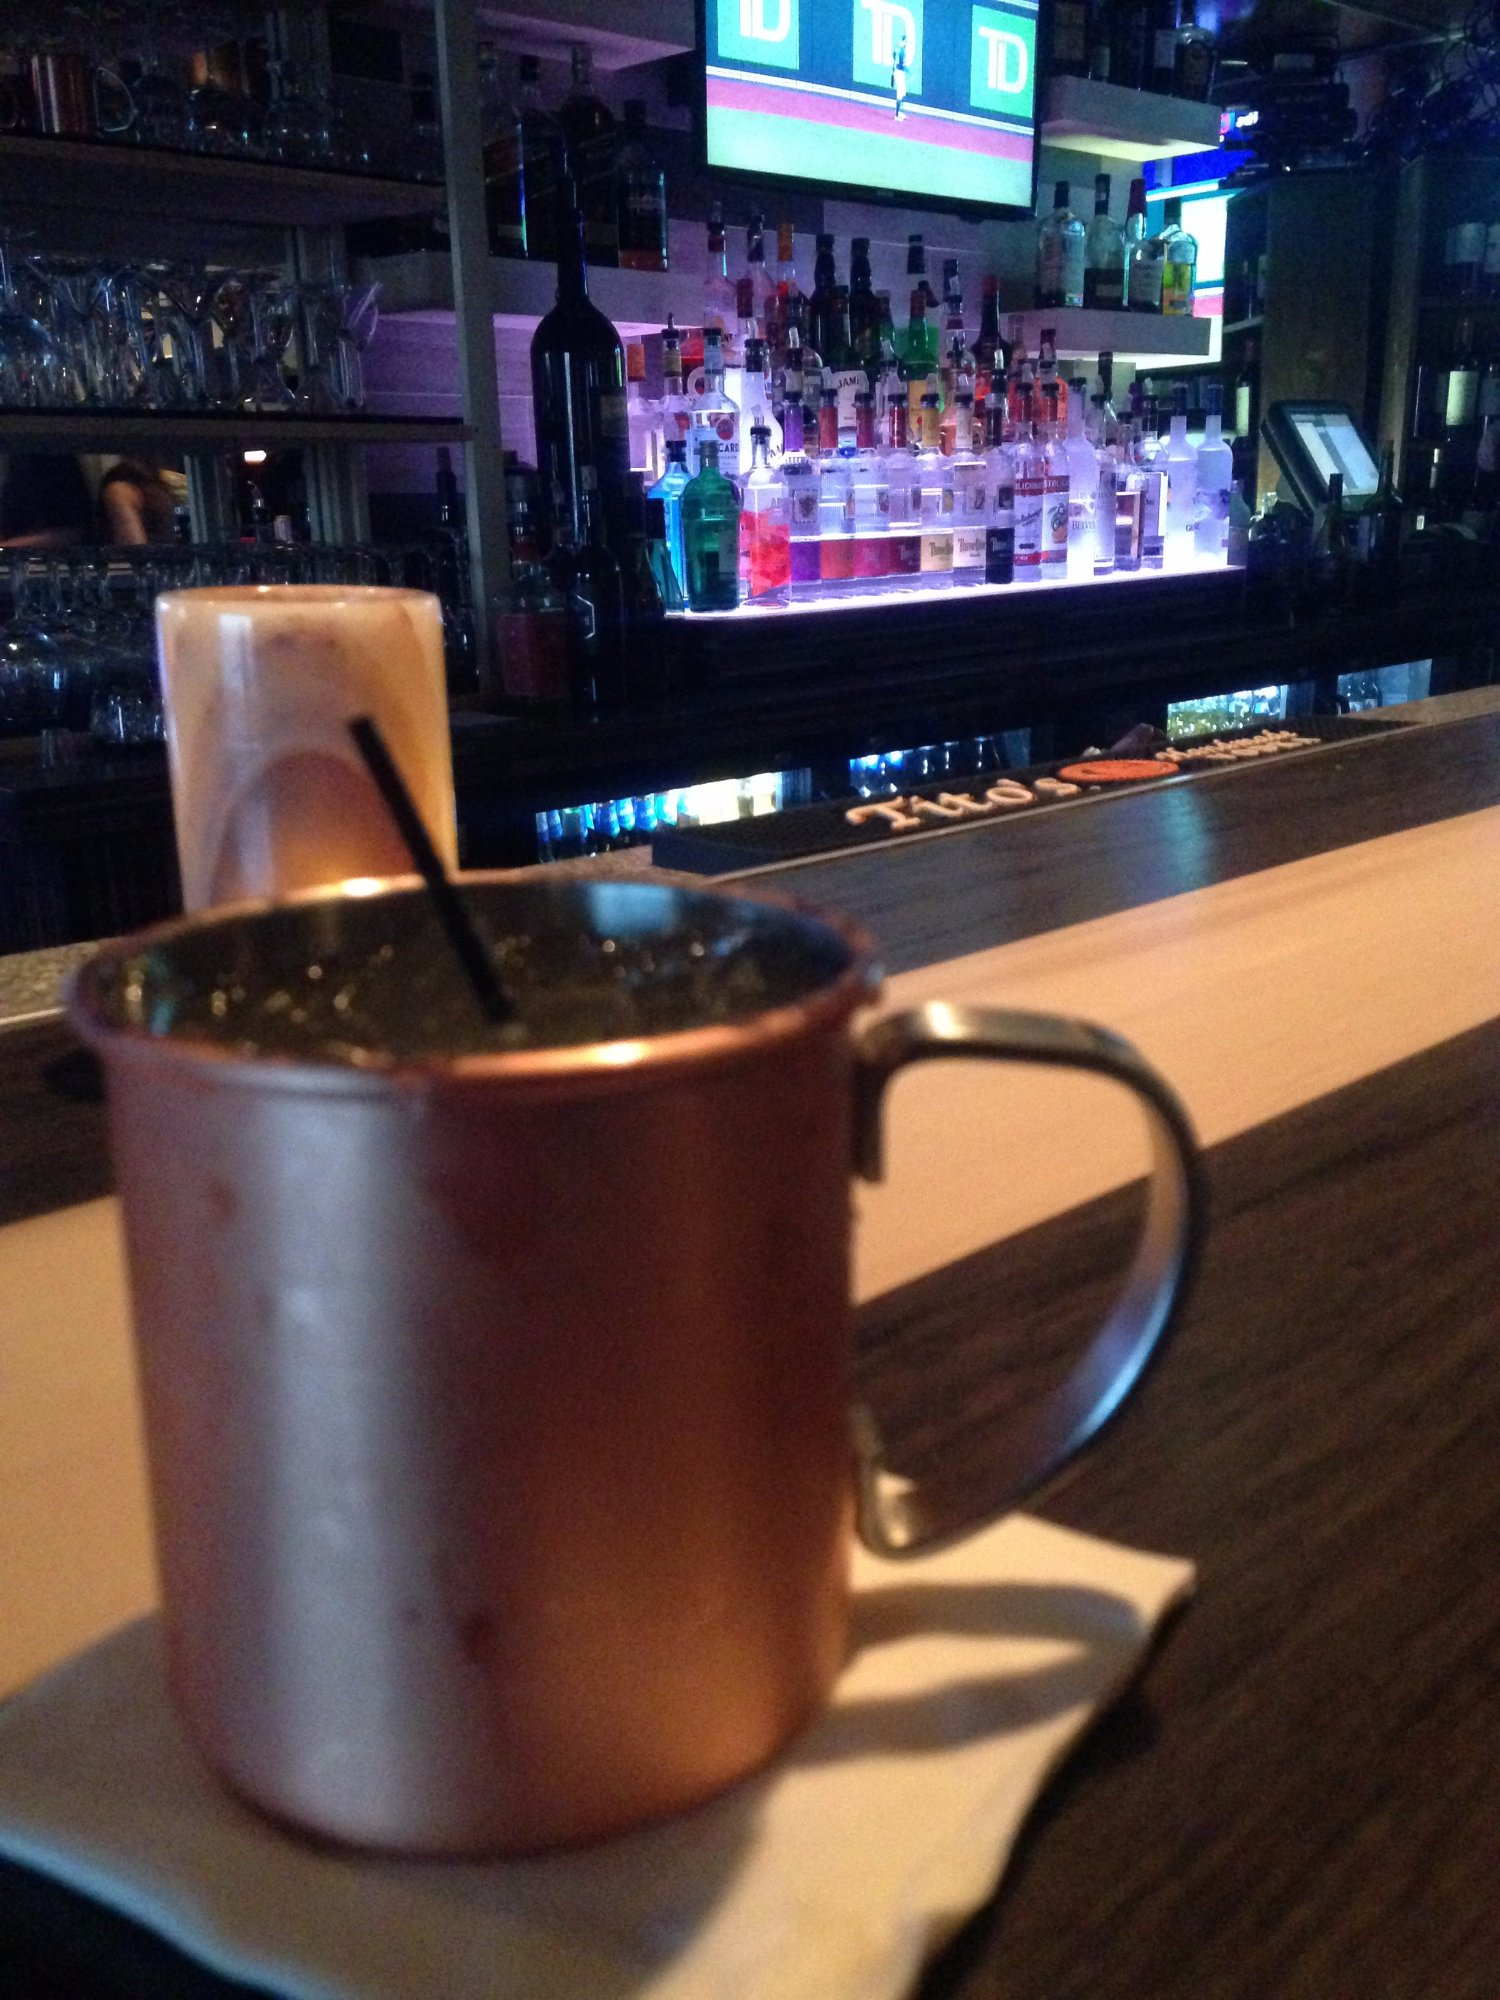 Moscow Mule at the bar before dinner